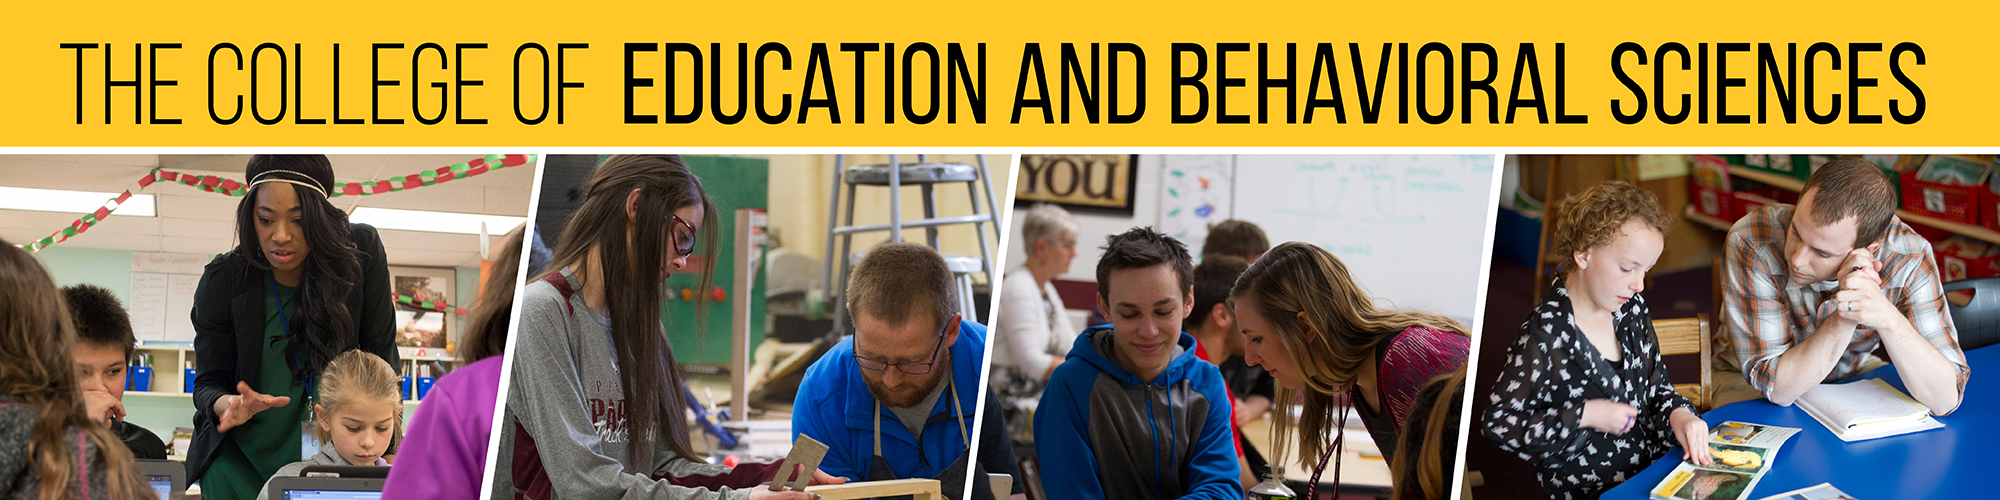 BHSU COLLEGE OF EDUCATION & BEHAVIORAL SCIENCES